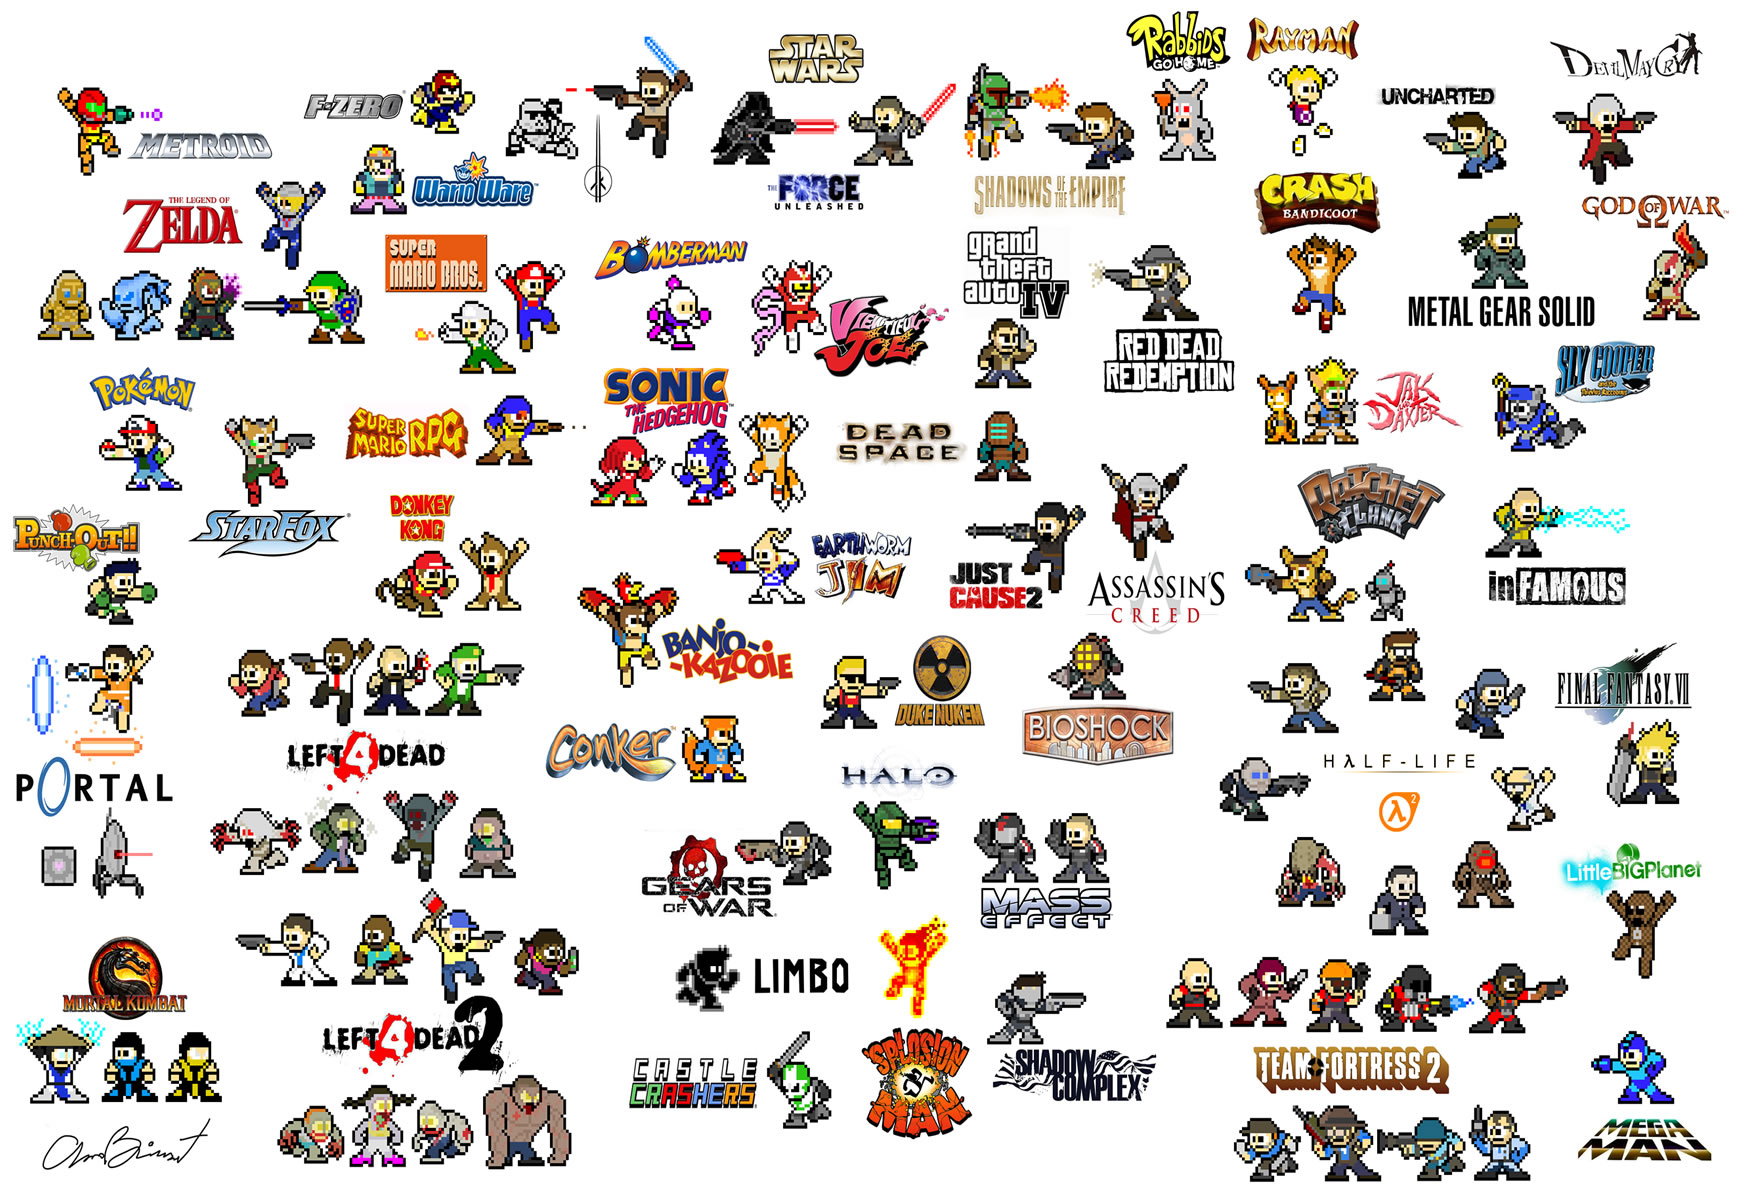 Classic Megaman Style Pixel Video Game Art Featuring